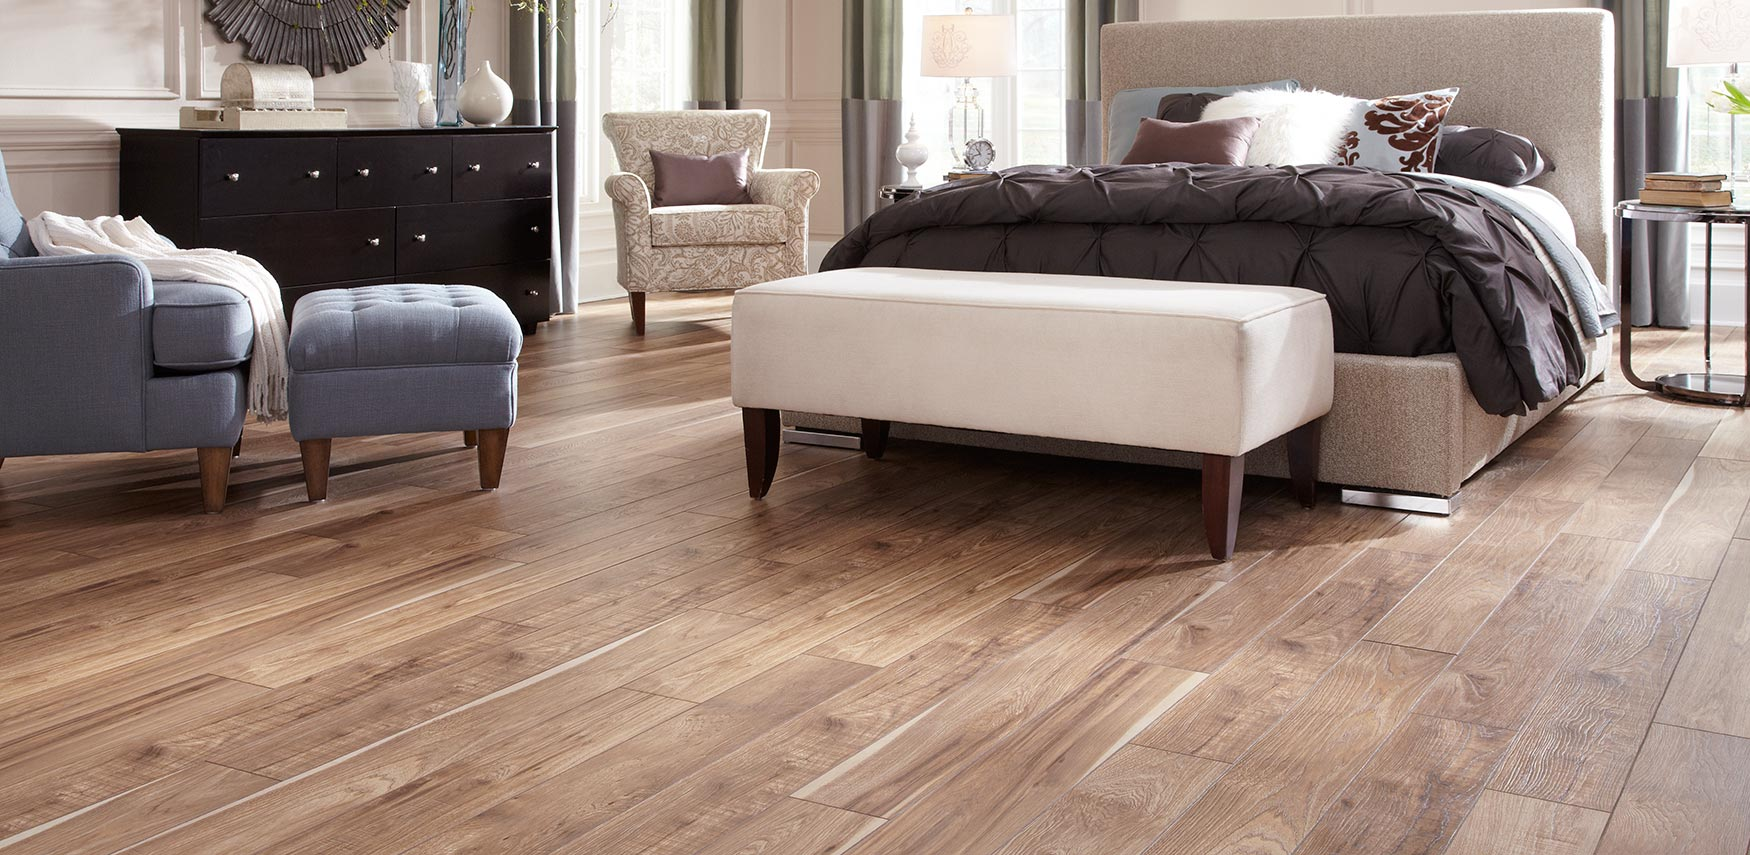 mannington flooring – resilient, laminate, hardwood, luxury vinyl